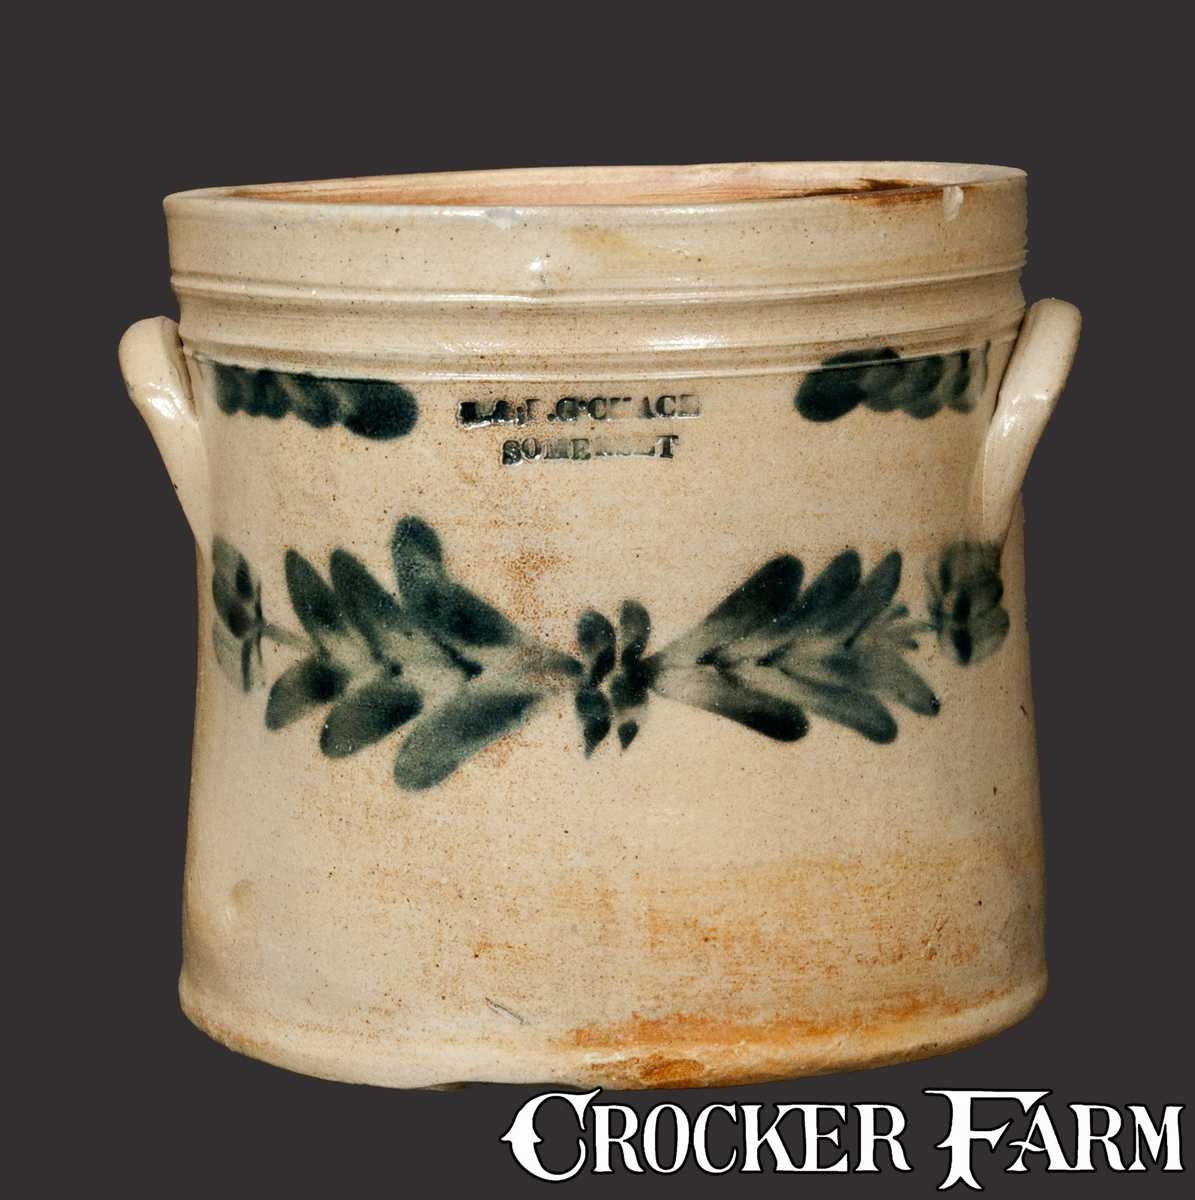 L B G CHACE SOMERSET Stoneware Crock With Floral Decoration